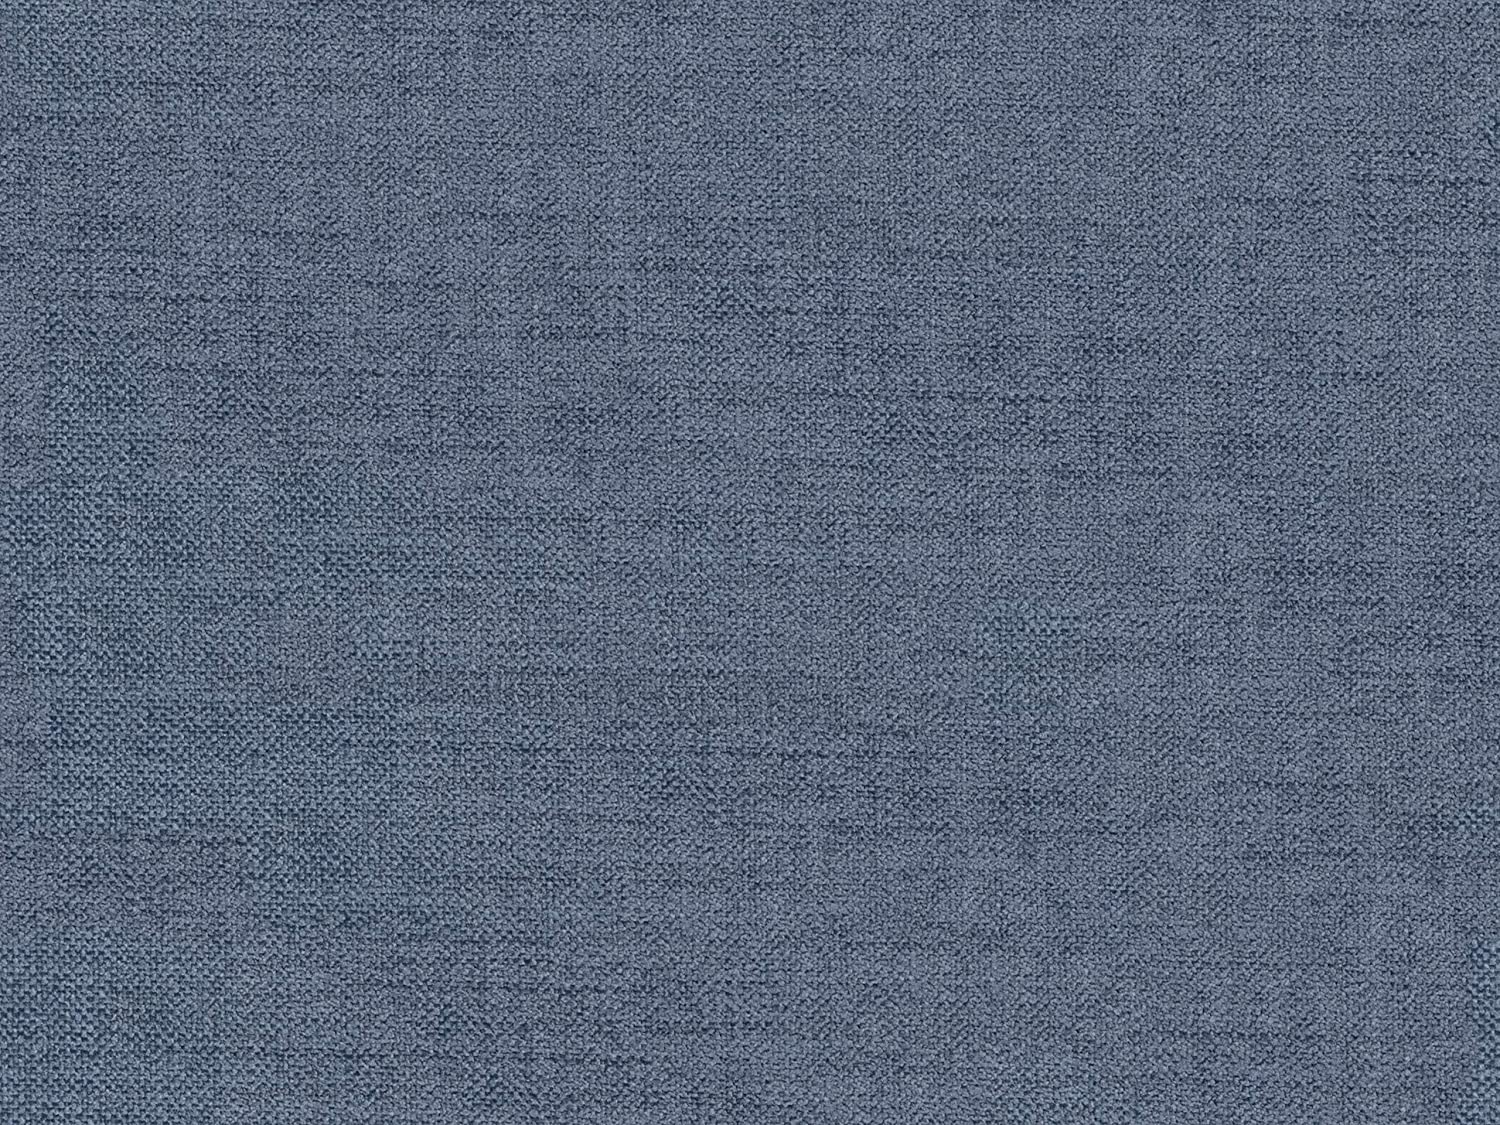 Liz Jordan Hill Featuring Spirit Collection - 40 Woven Chenille Upholstery Fabric by The Yard - Heavy Upholstery Fabric with Aquaclean Technology - Flat Sewn Top Stitching - Jelly Fish